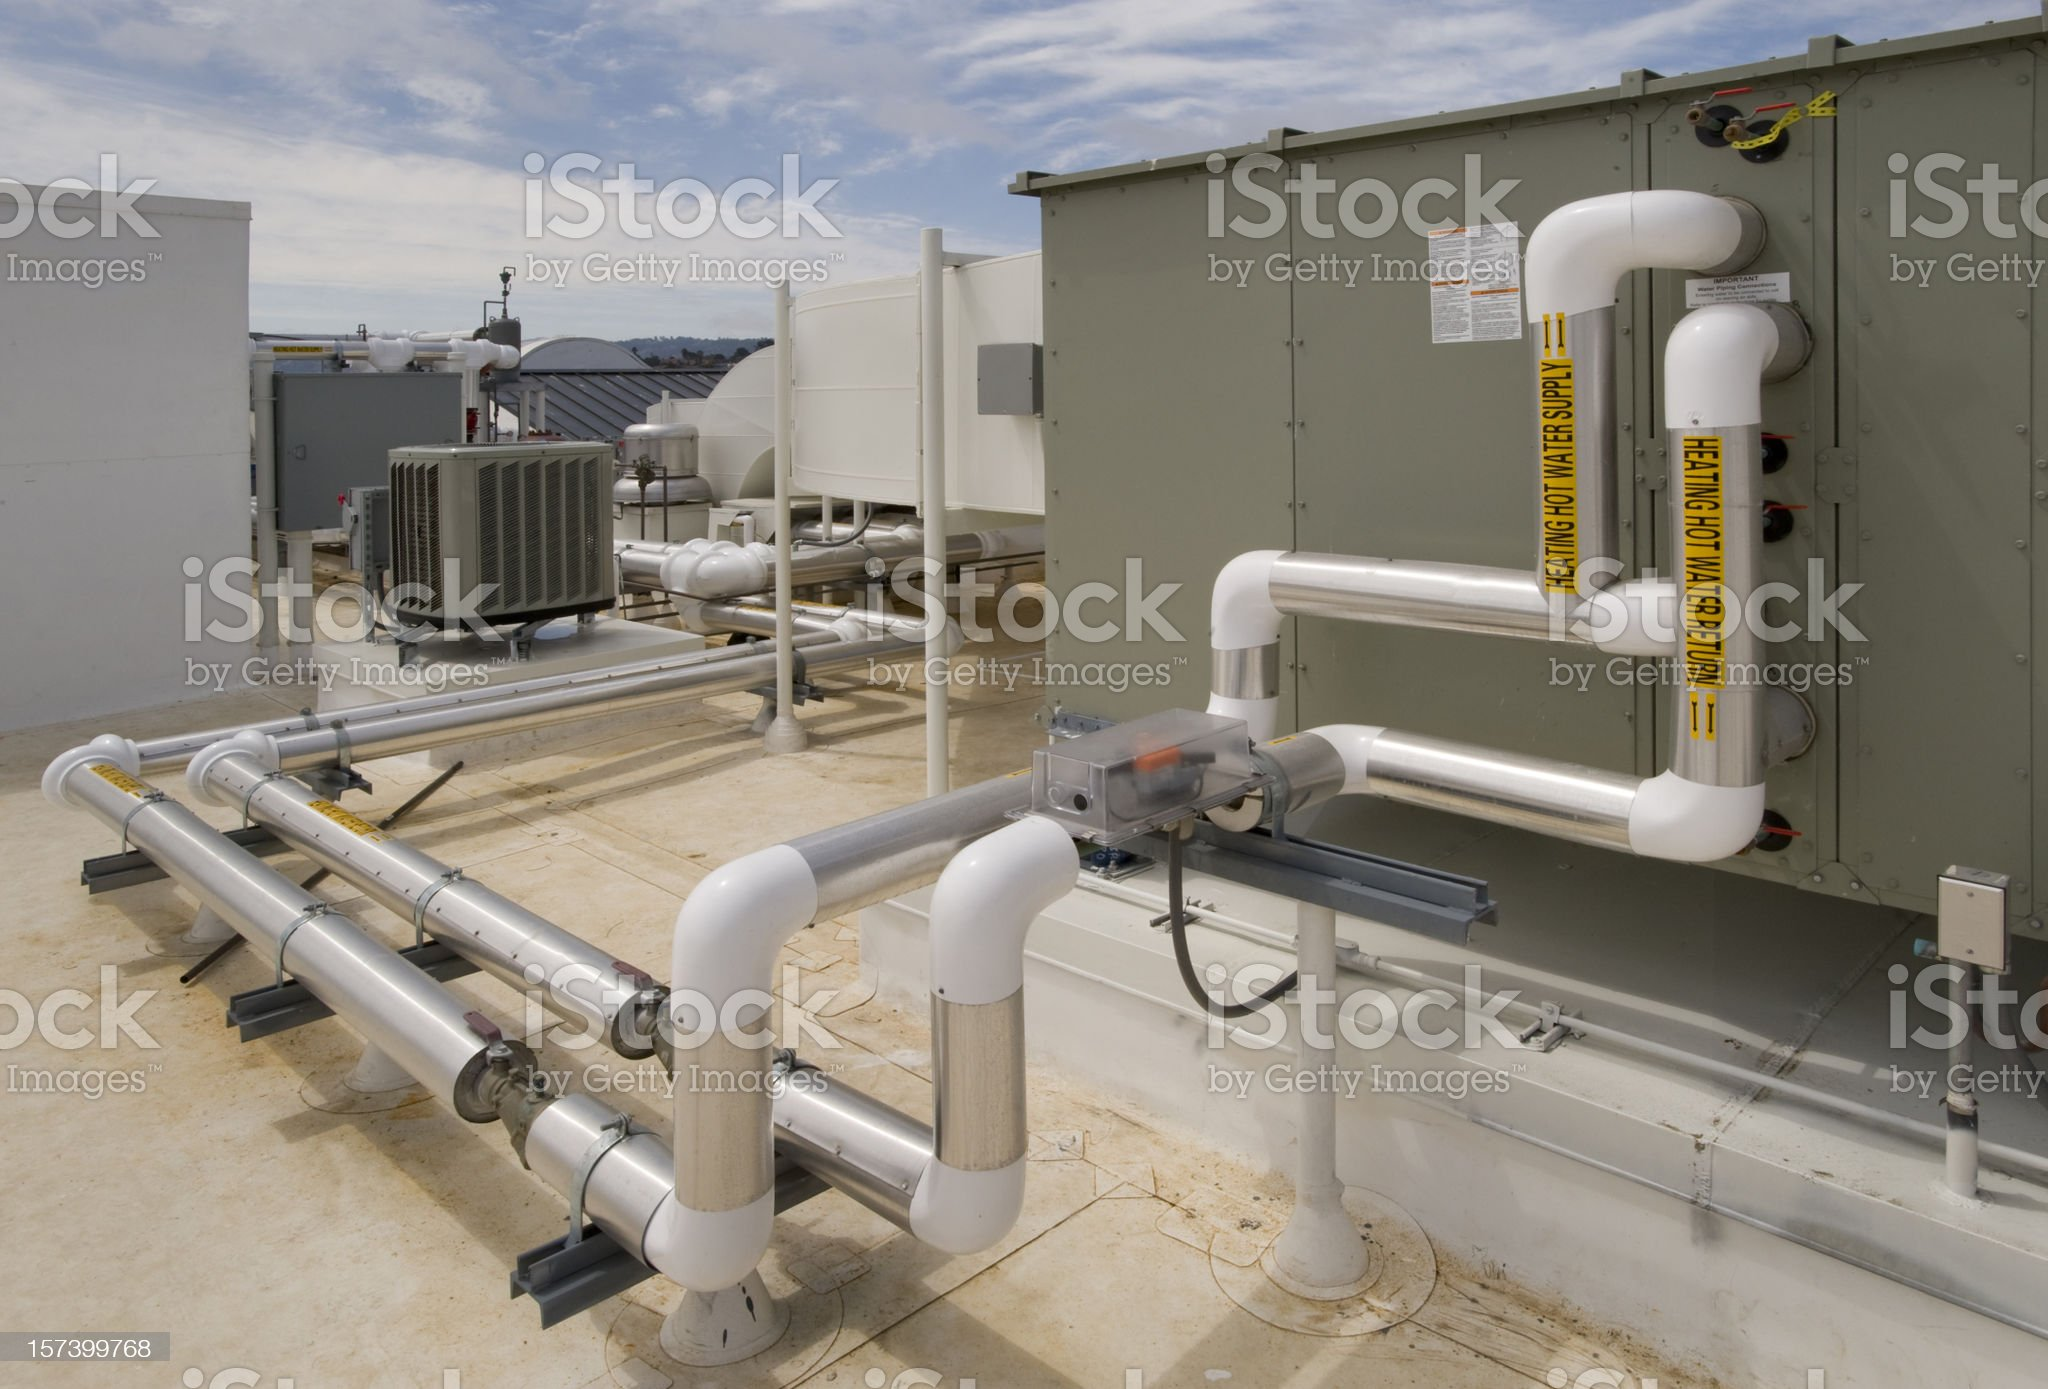 Rooftop HVAC System royalty-free stock photo